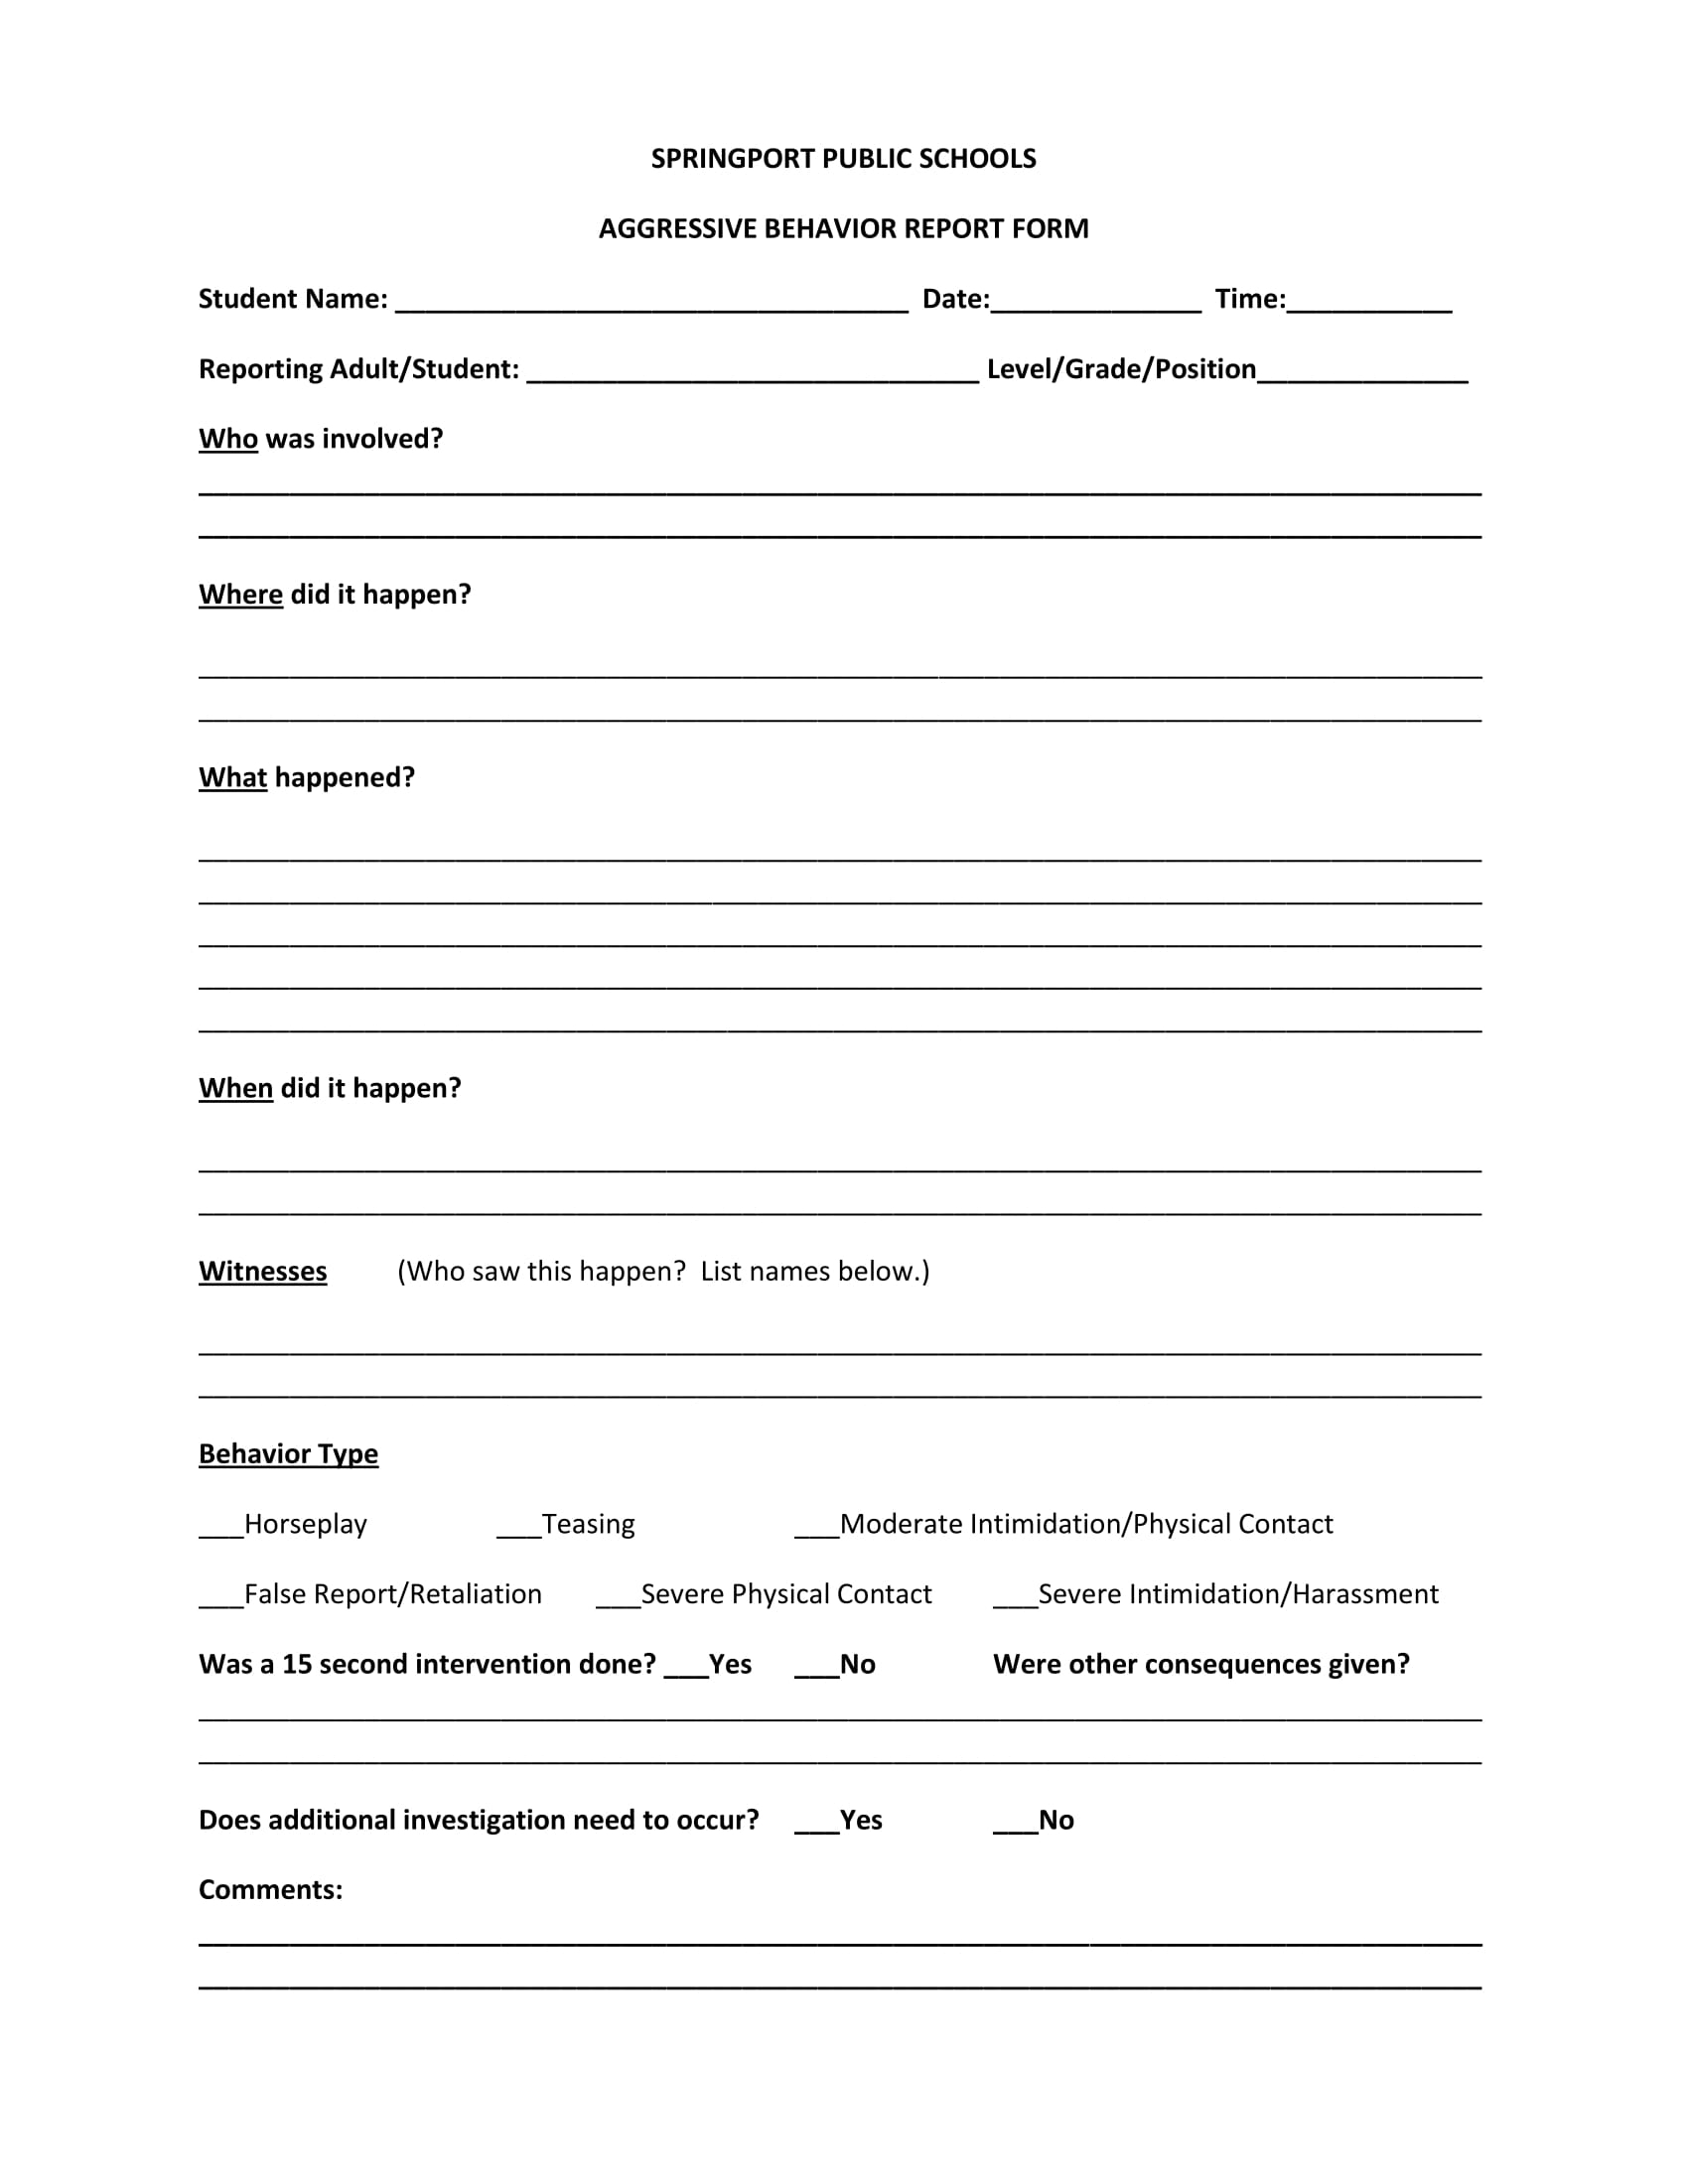 aggresive behavior report form 1